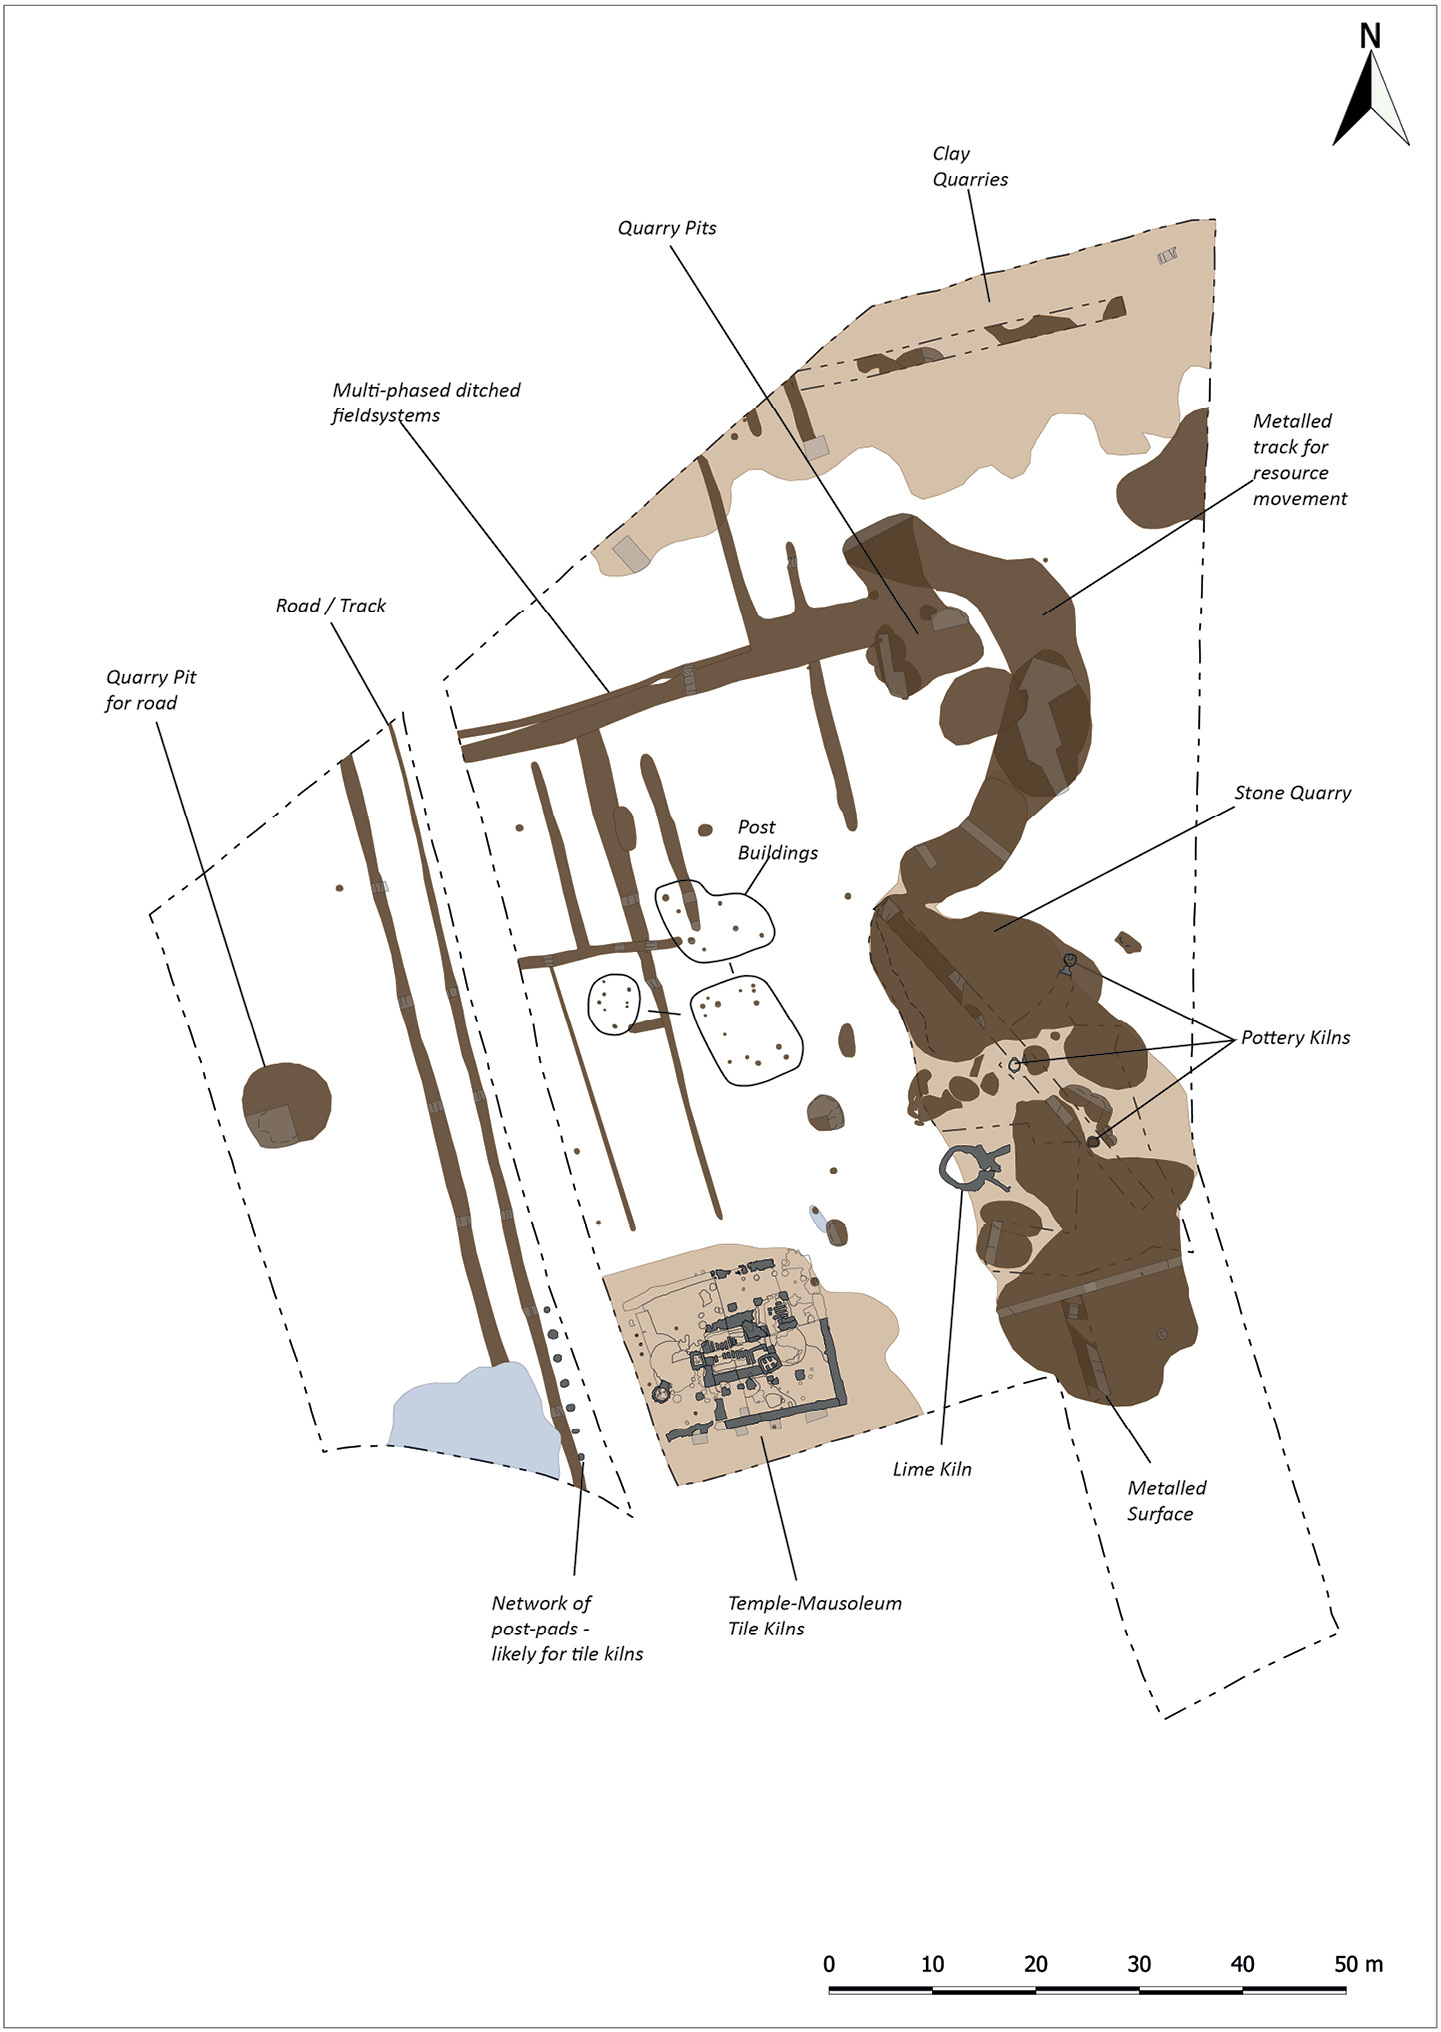 This site plan shows the key features recorded during OA East's investigations.